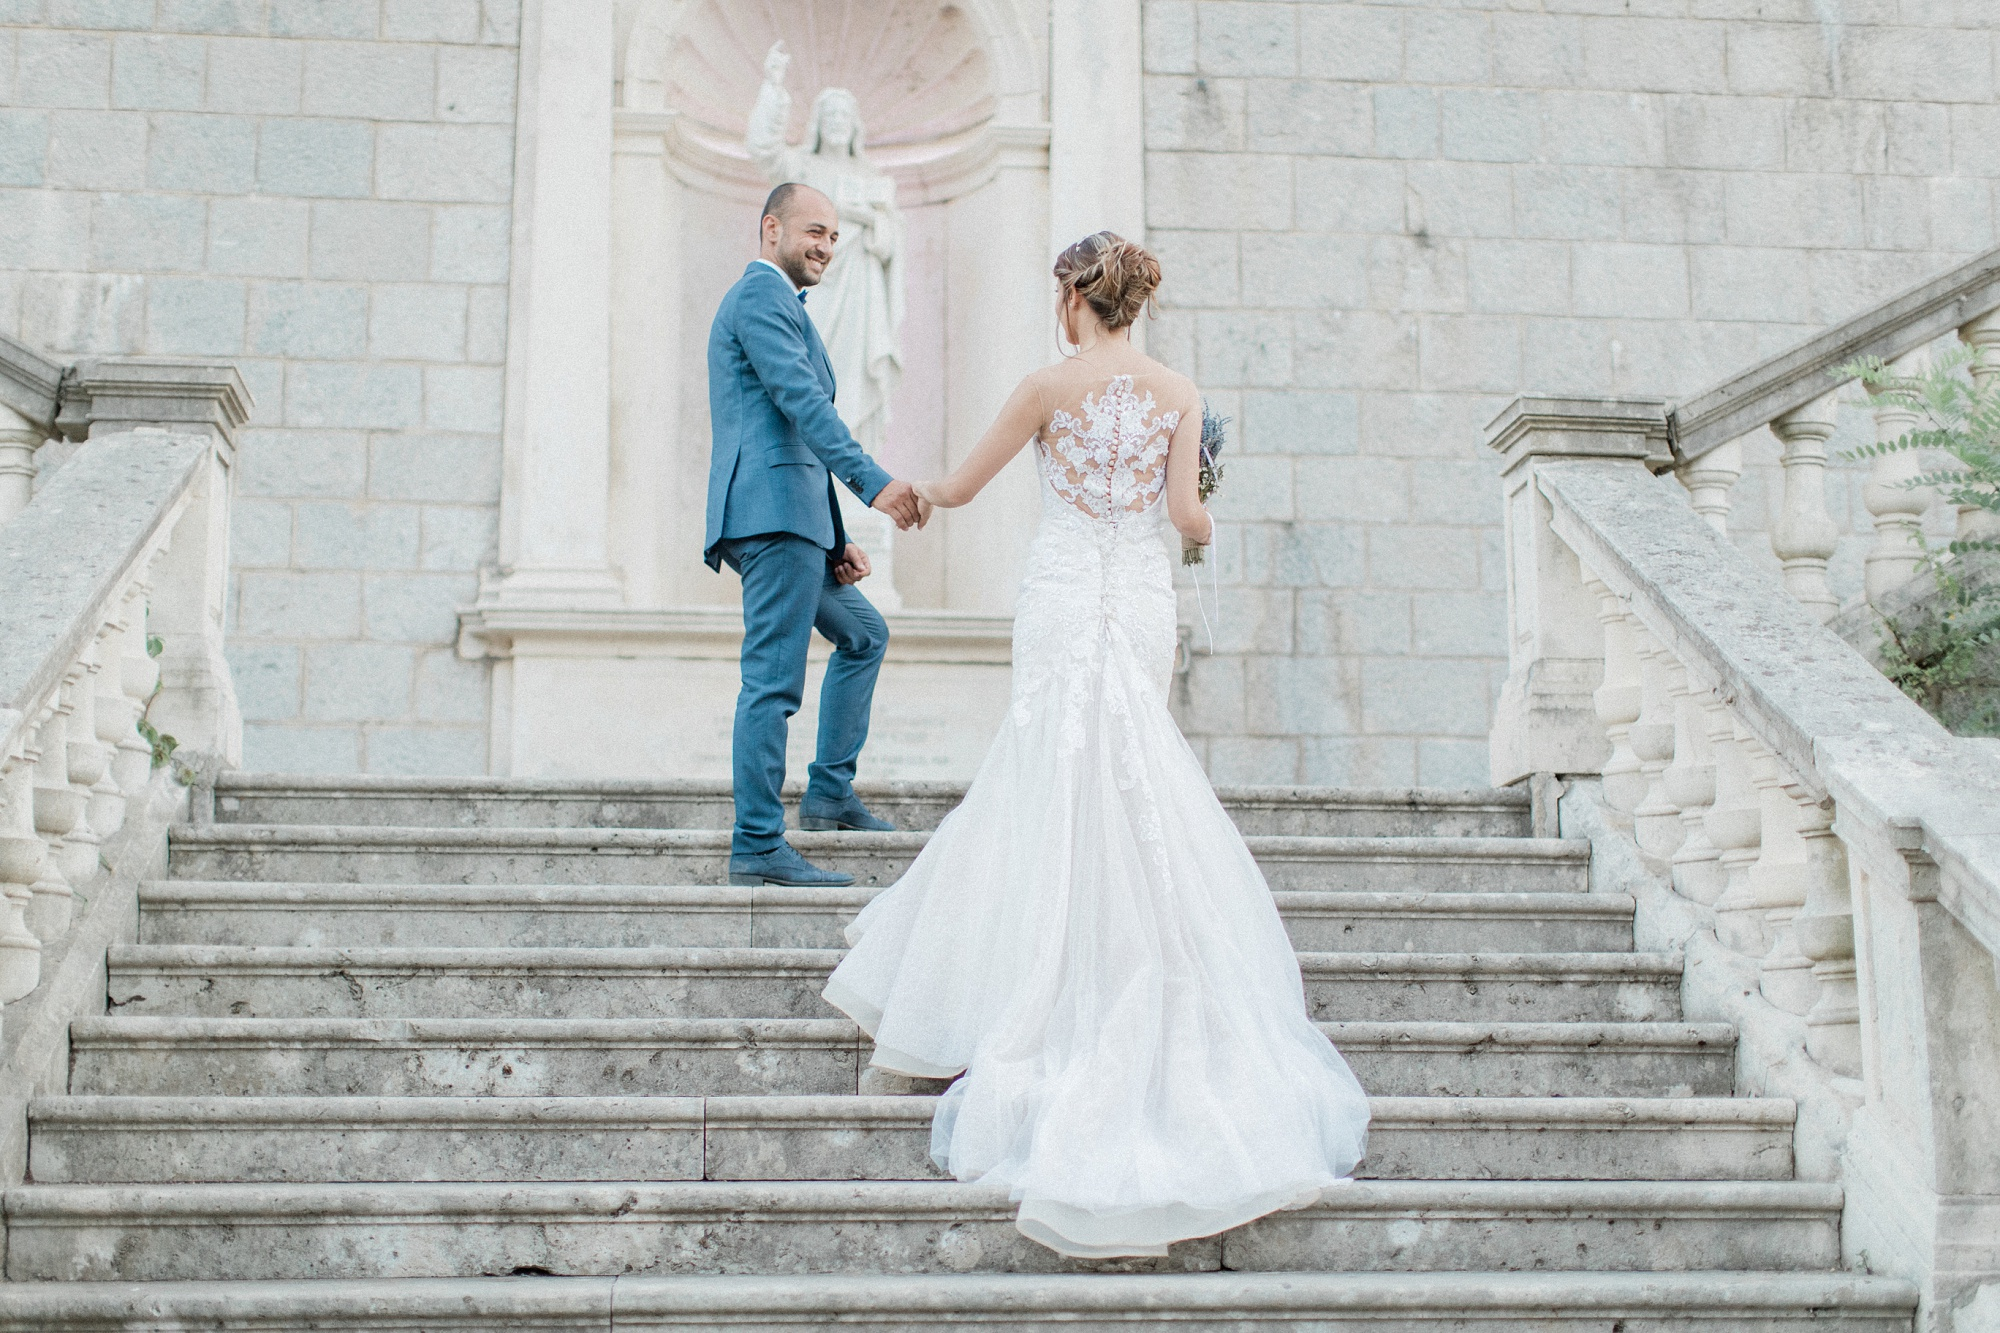 Albania Wedding Photographer - Anjeza Dyrmishi_0450.jpg